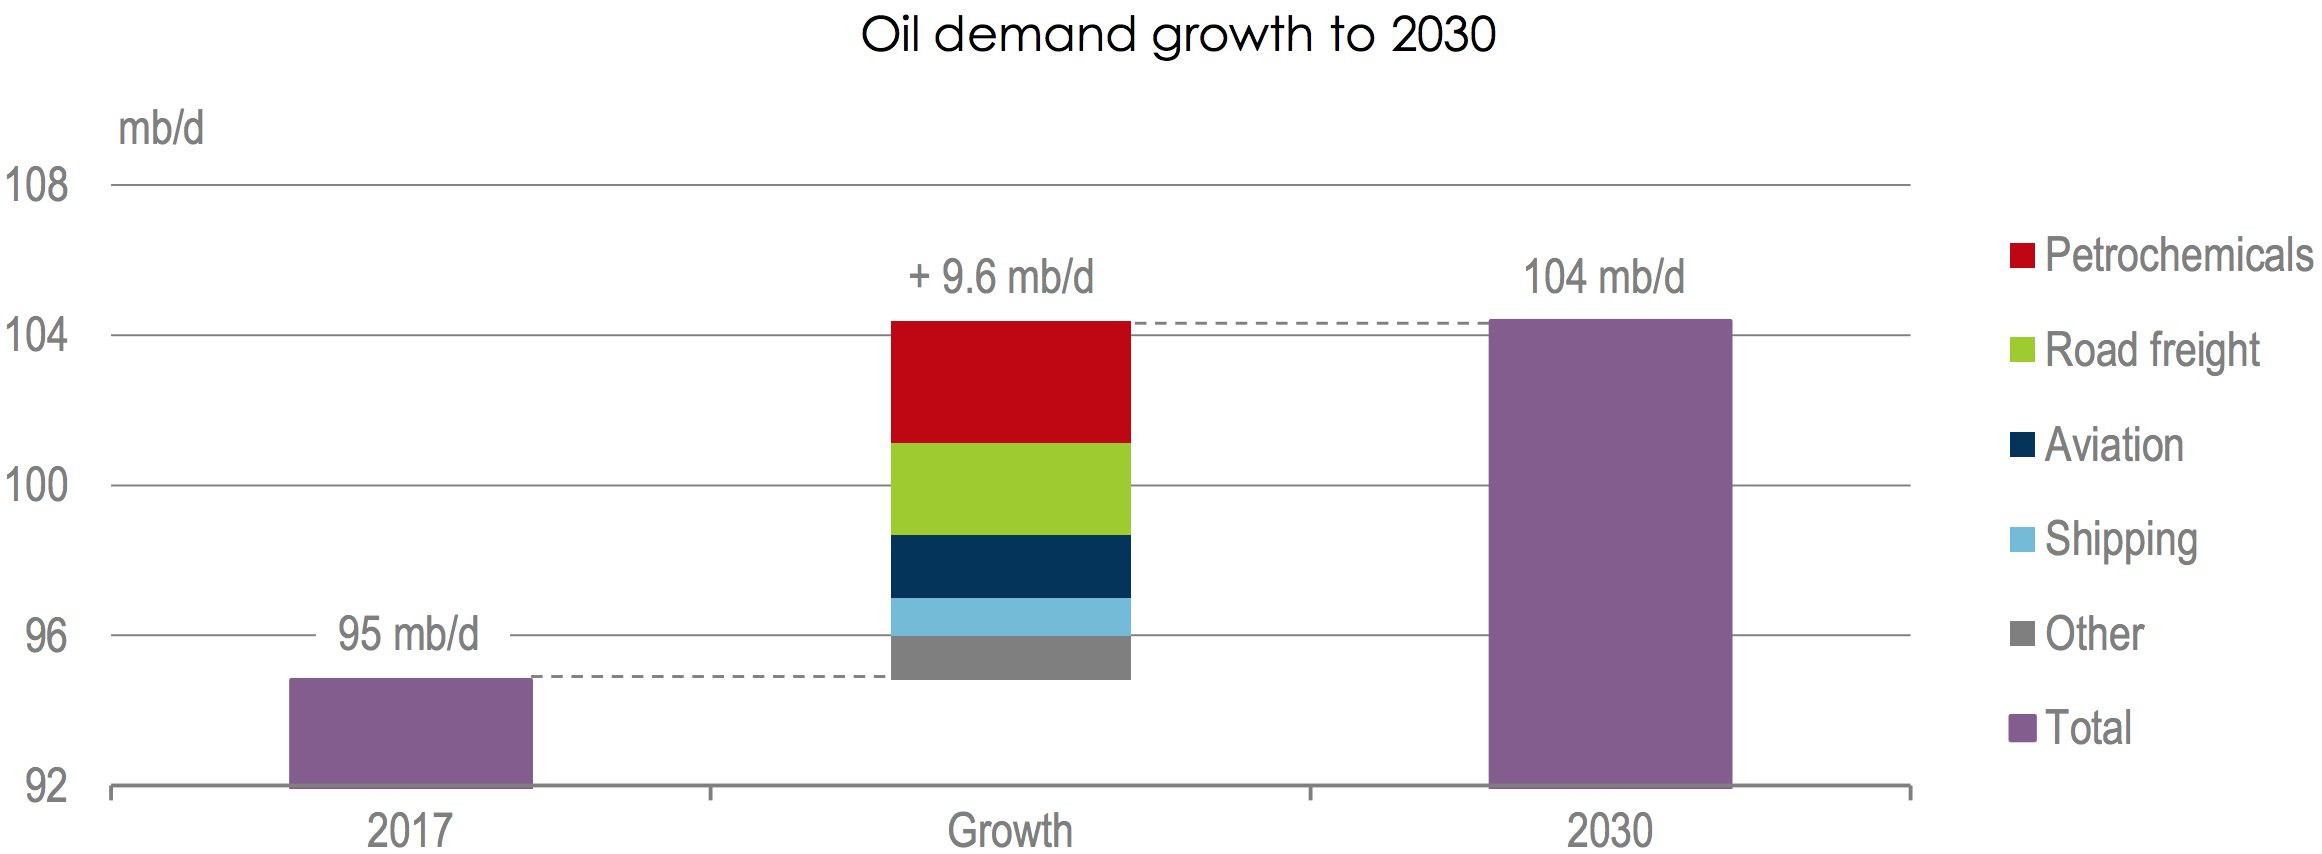 Chart showing sources of oil demand growth through 2030